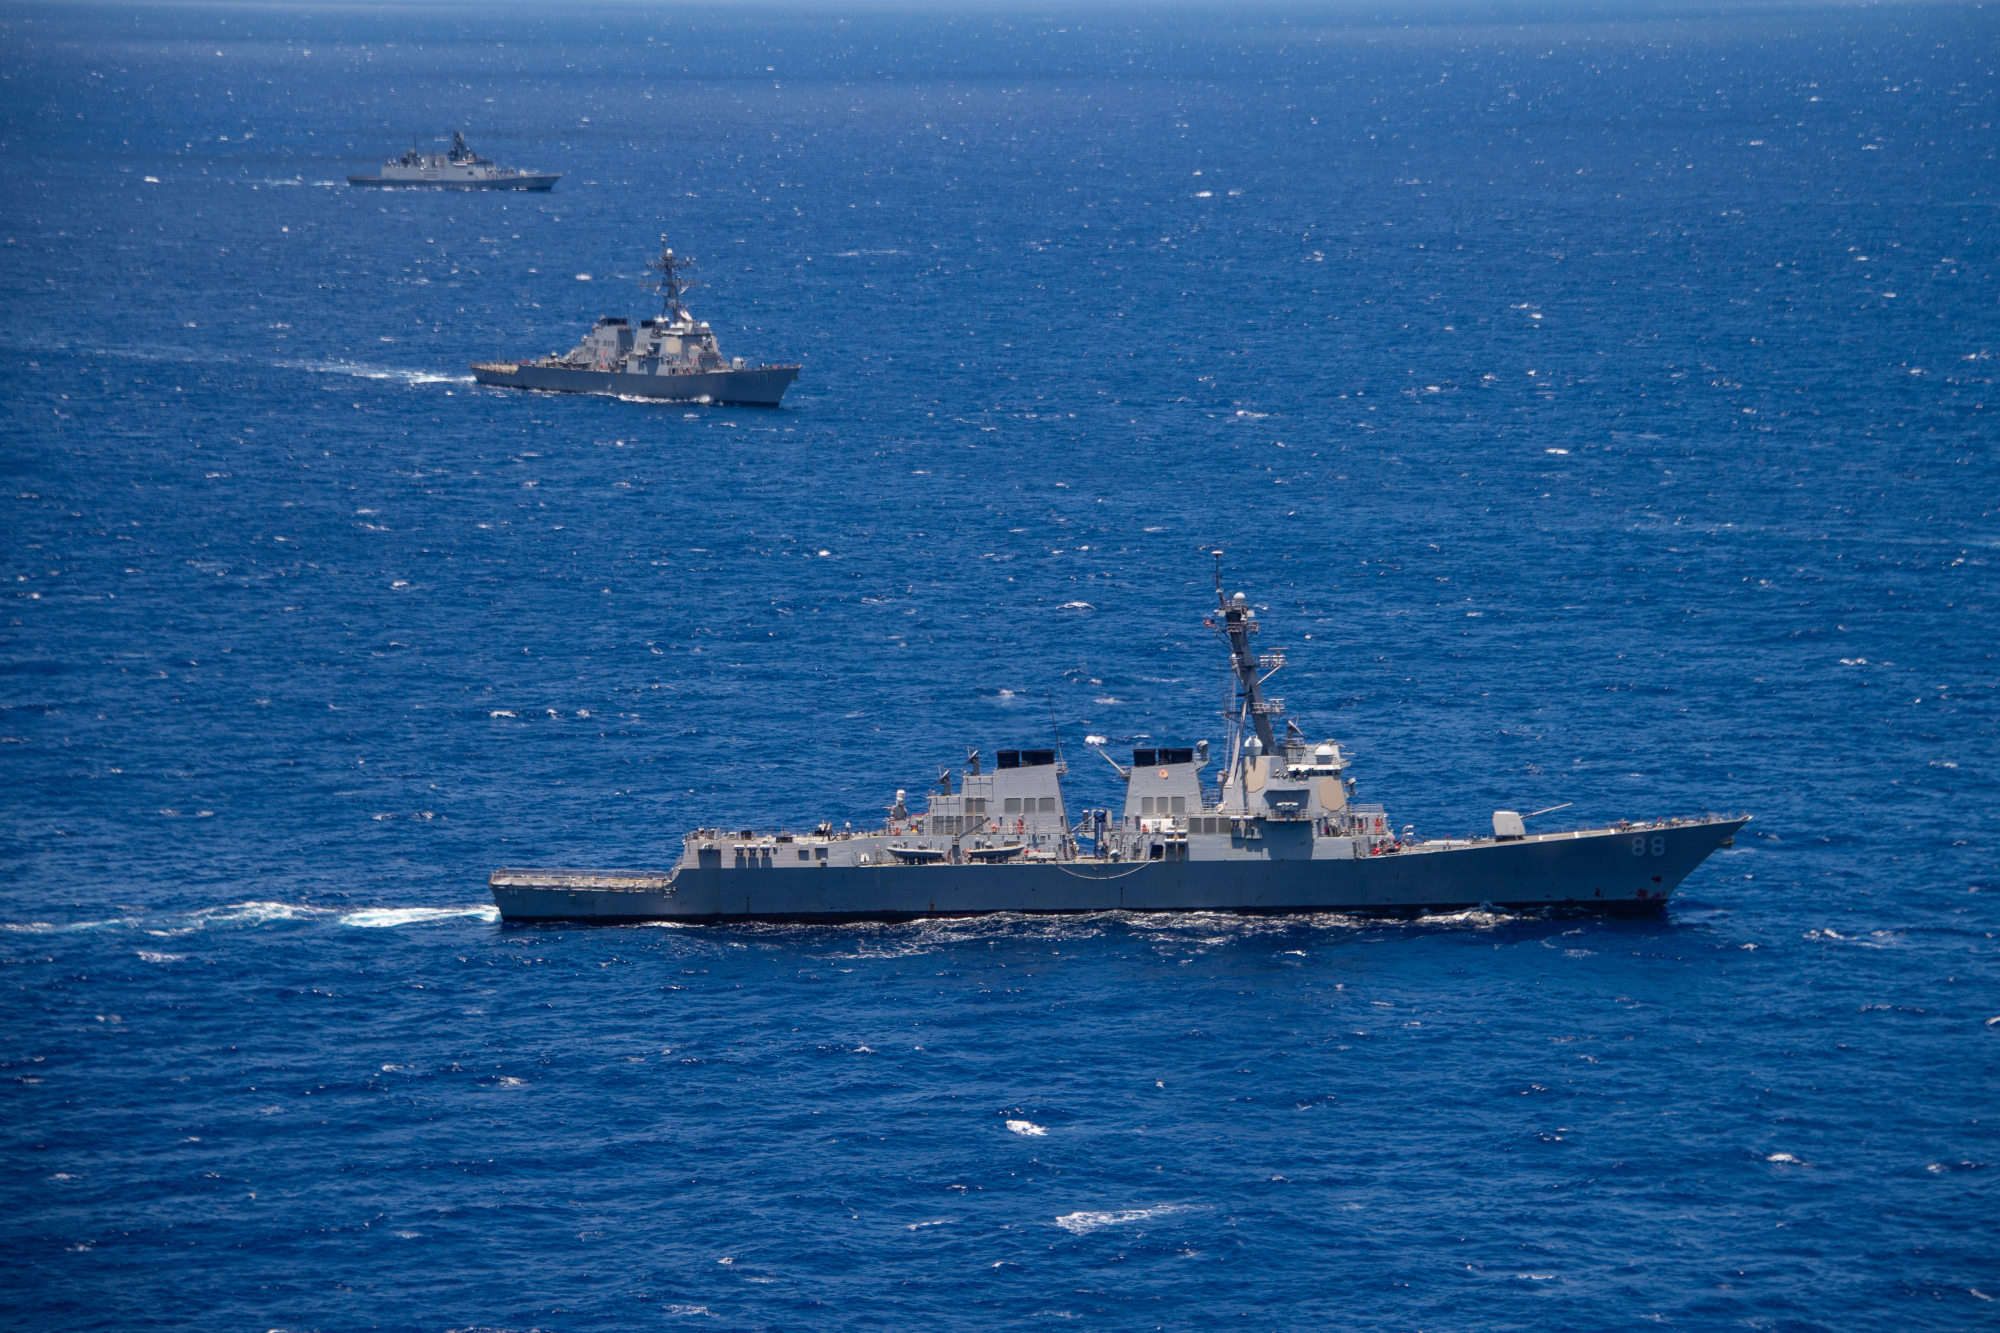 The guided-missile destroyer USS Preble participates in a group sail during the Rim of the Pacific (RIMPAC) exercise off the coast of Hawaii last July. | U.S. NAVY